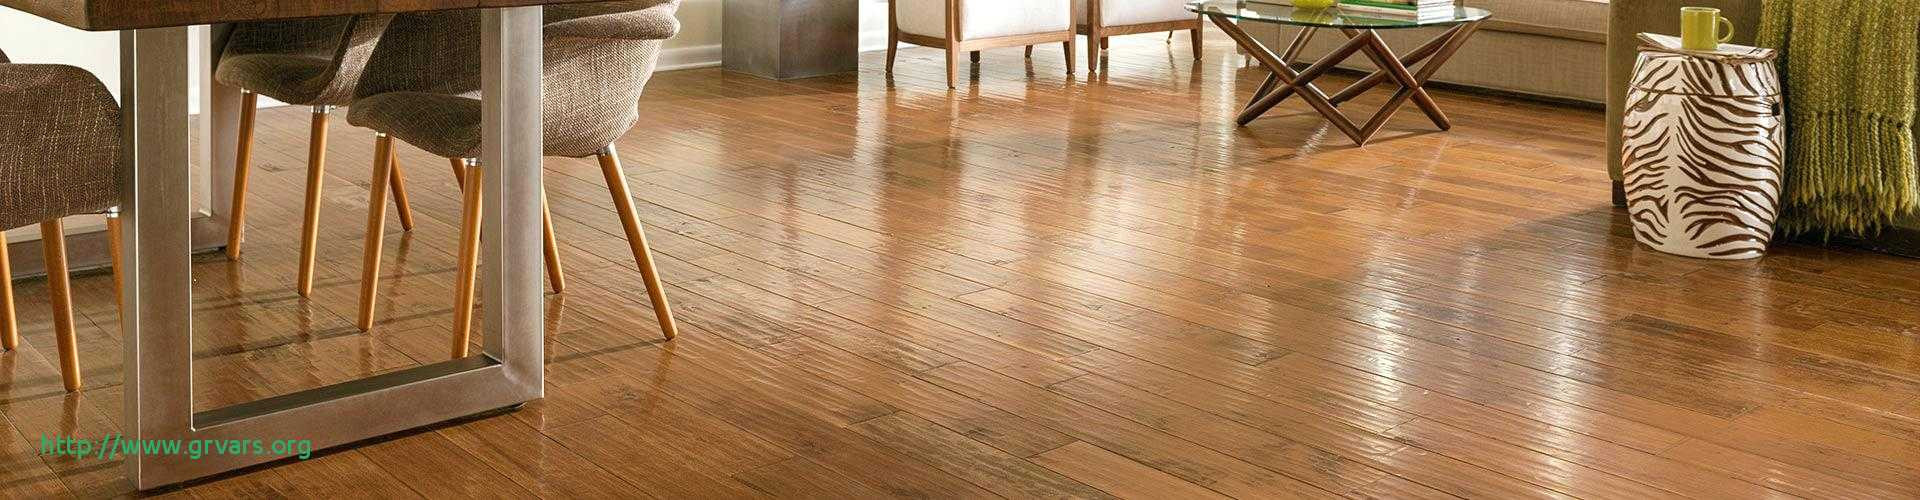 Hardwood Flooring Types Pros and Cons Of 23 A‰lagant Pros and Cons Of Laminate Flooring Versus Hardwood with Regard to Pros and Cons Of Laminate Flooring Versus Hardwood Luxe Od Grain Tile Bathroom Wood Shower No